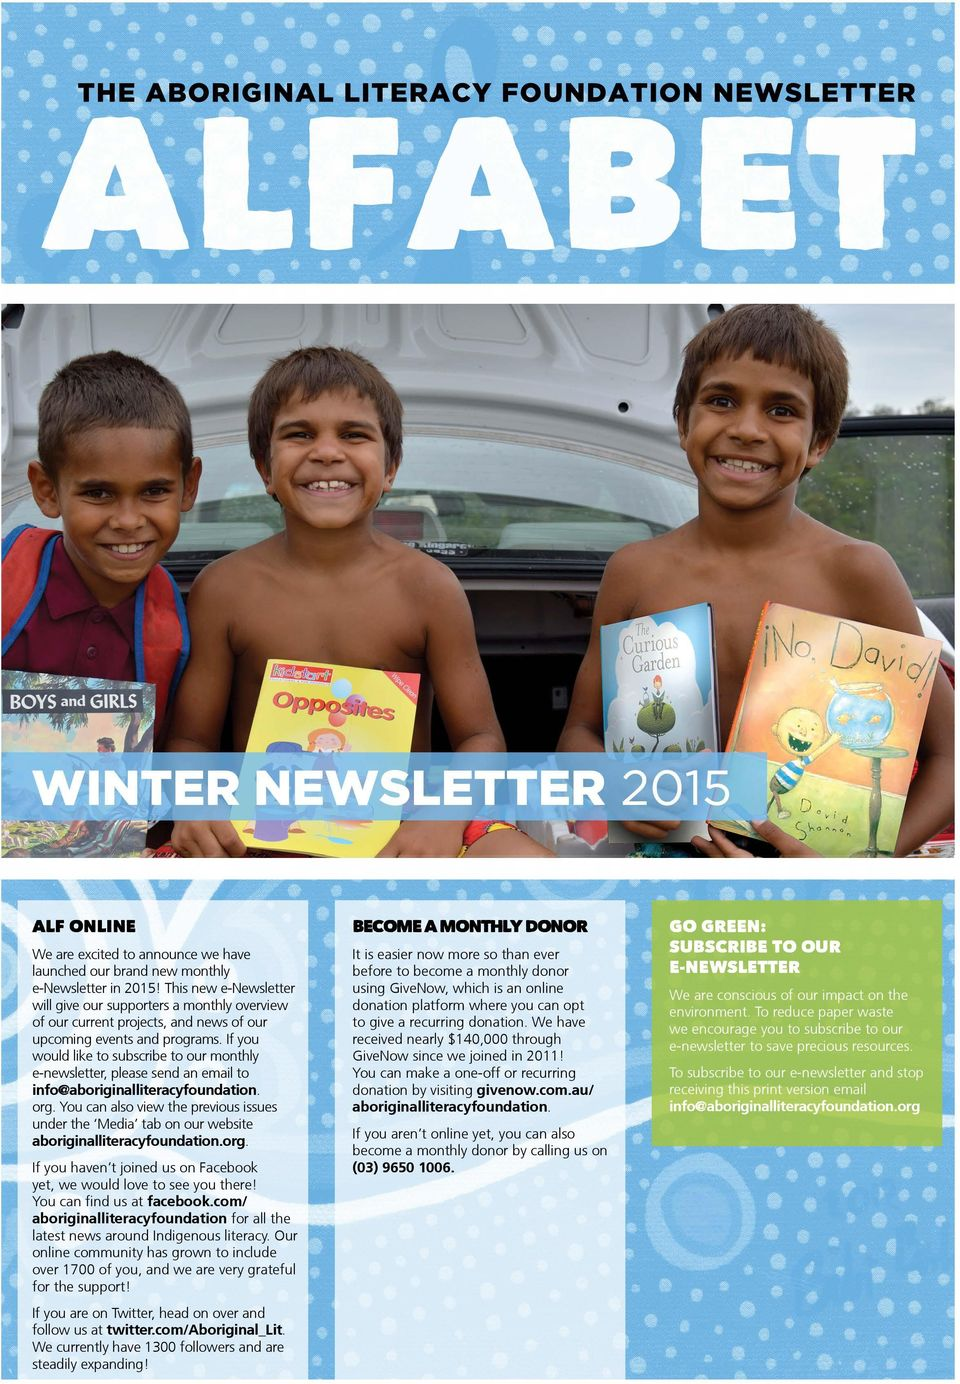 If you would like to subscribe to our monthly e-newsletter, please send an email to info@aboriginalliteracyfoundation. org.